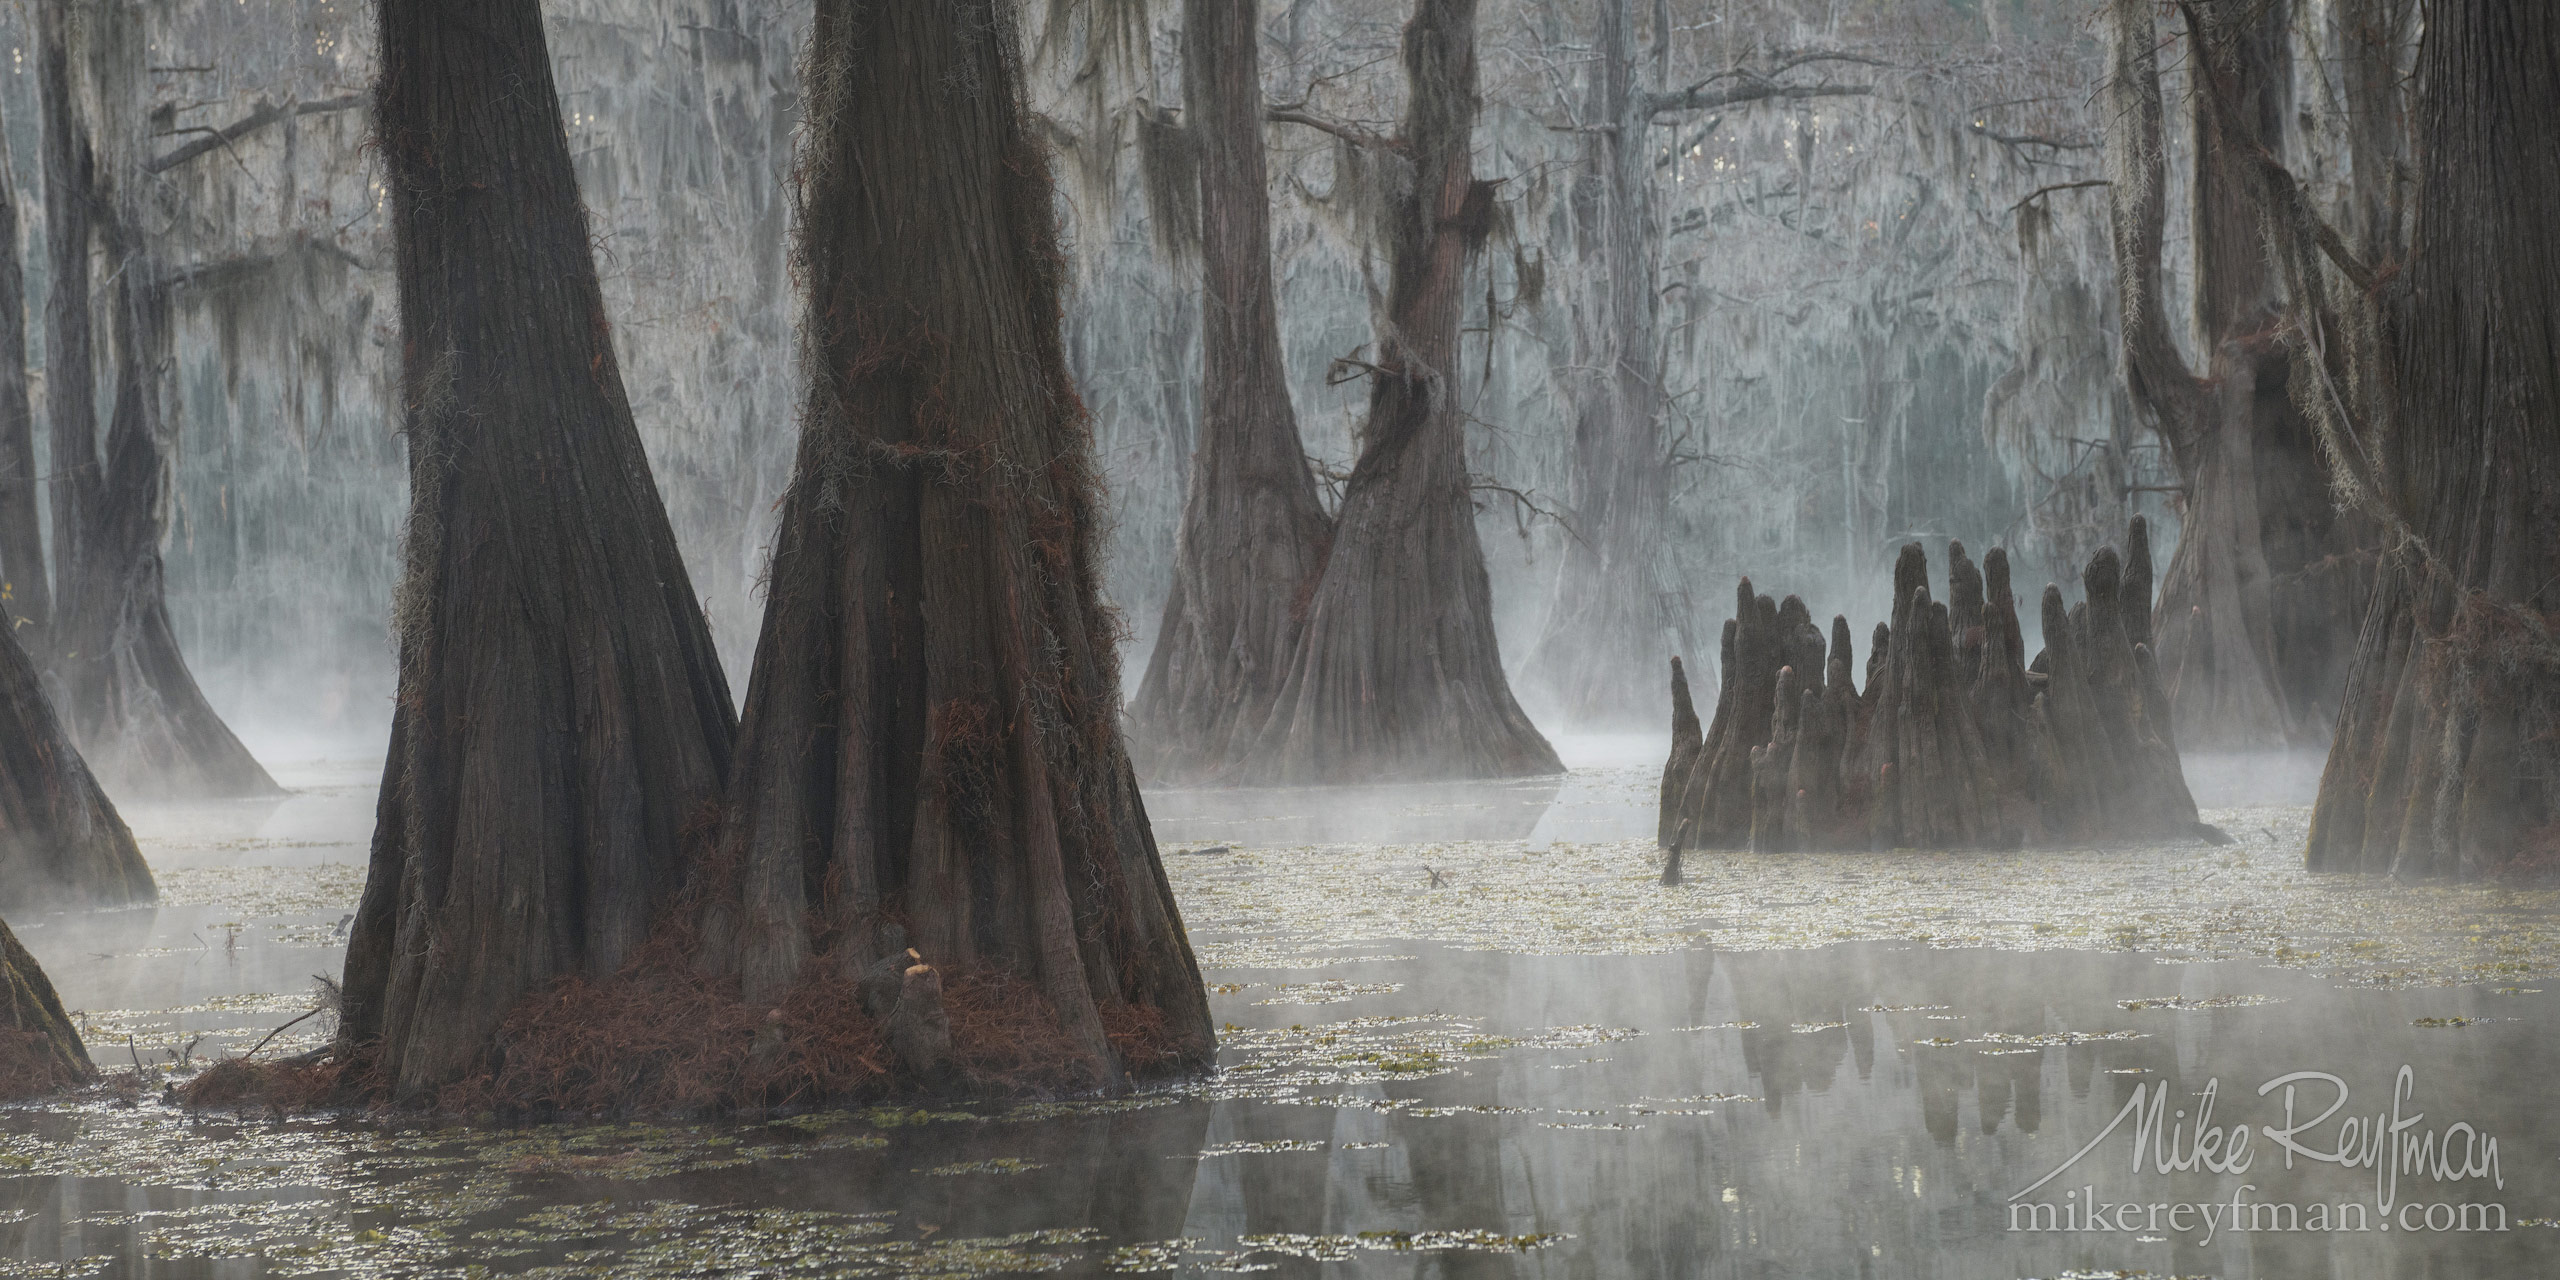 Swamp King's Crown. Bald Cypress trees in the swamp. Foggy morning on Caddo Lake, Texas, US 018-LT1-50A3310_Pano-2x1.jpg - Bold Cypress and Tupelo Trees in the swamps of Atchafalaya River Basin. Caddo, Martin and Fousse Lakes. Texas/Louisiana, USA. - Mike Reyfman Photography